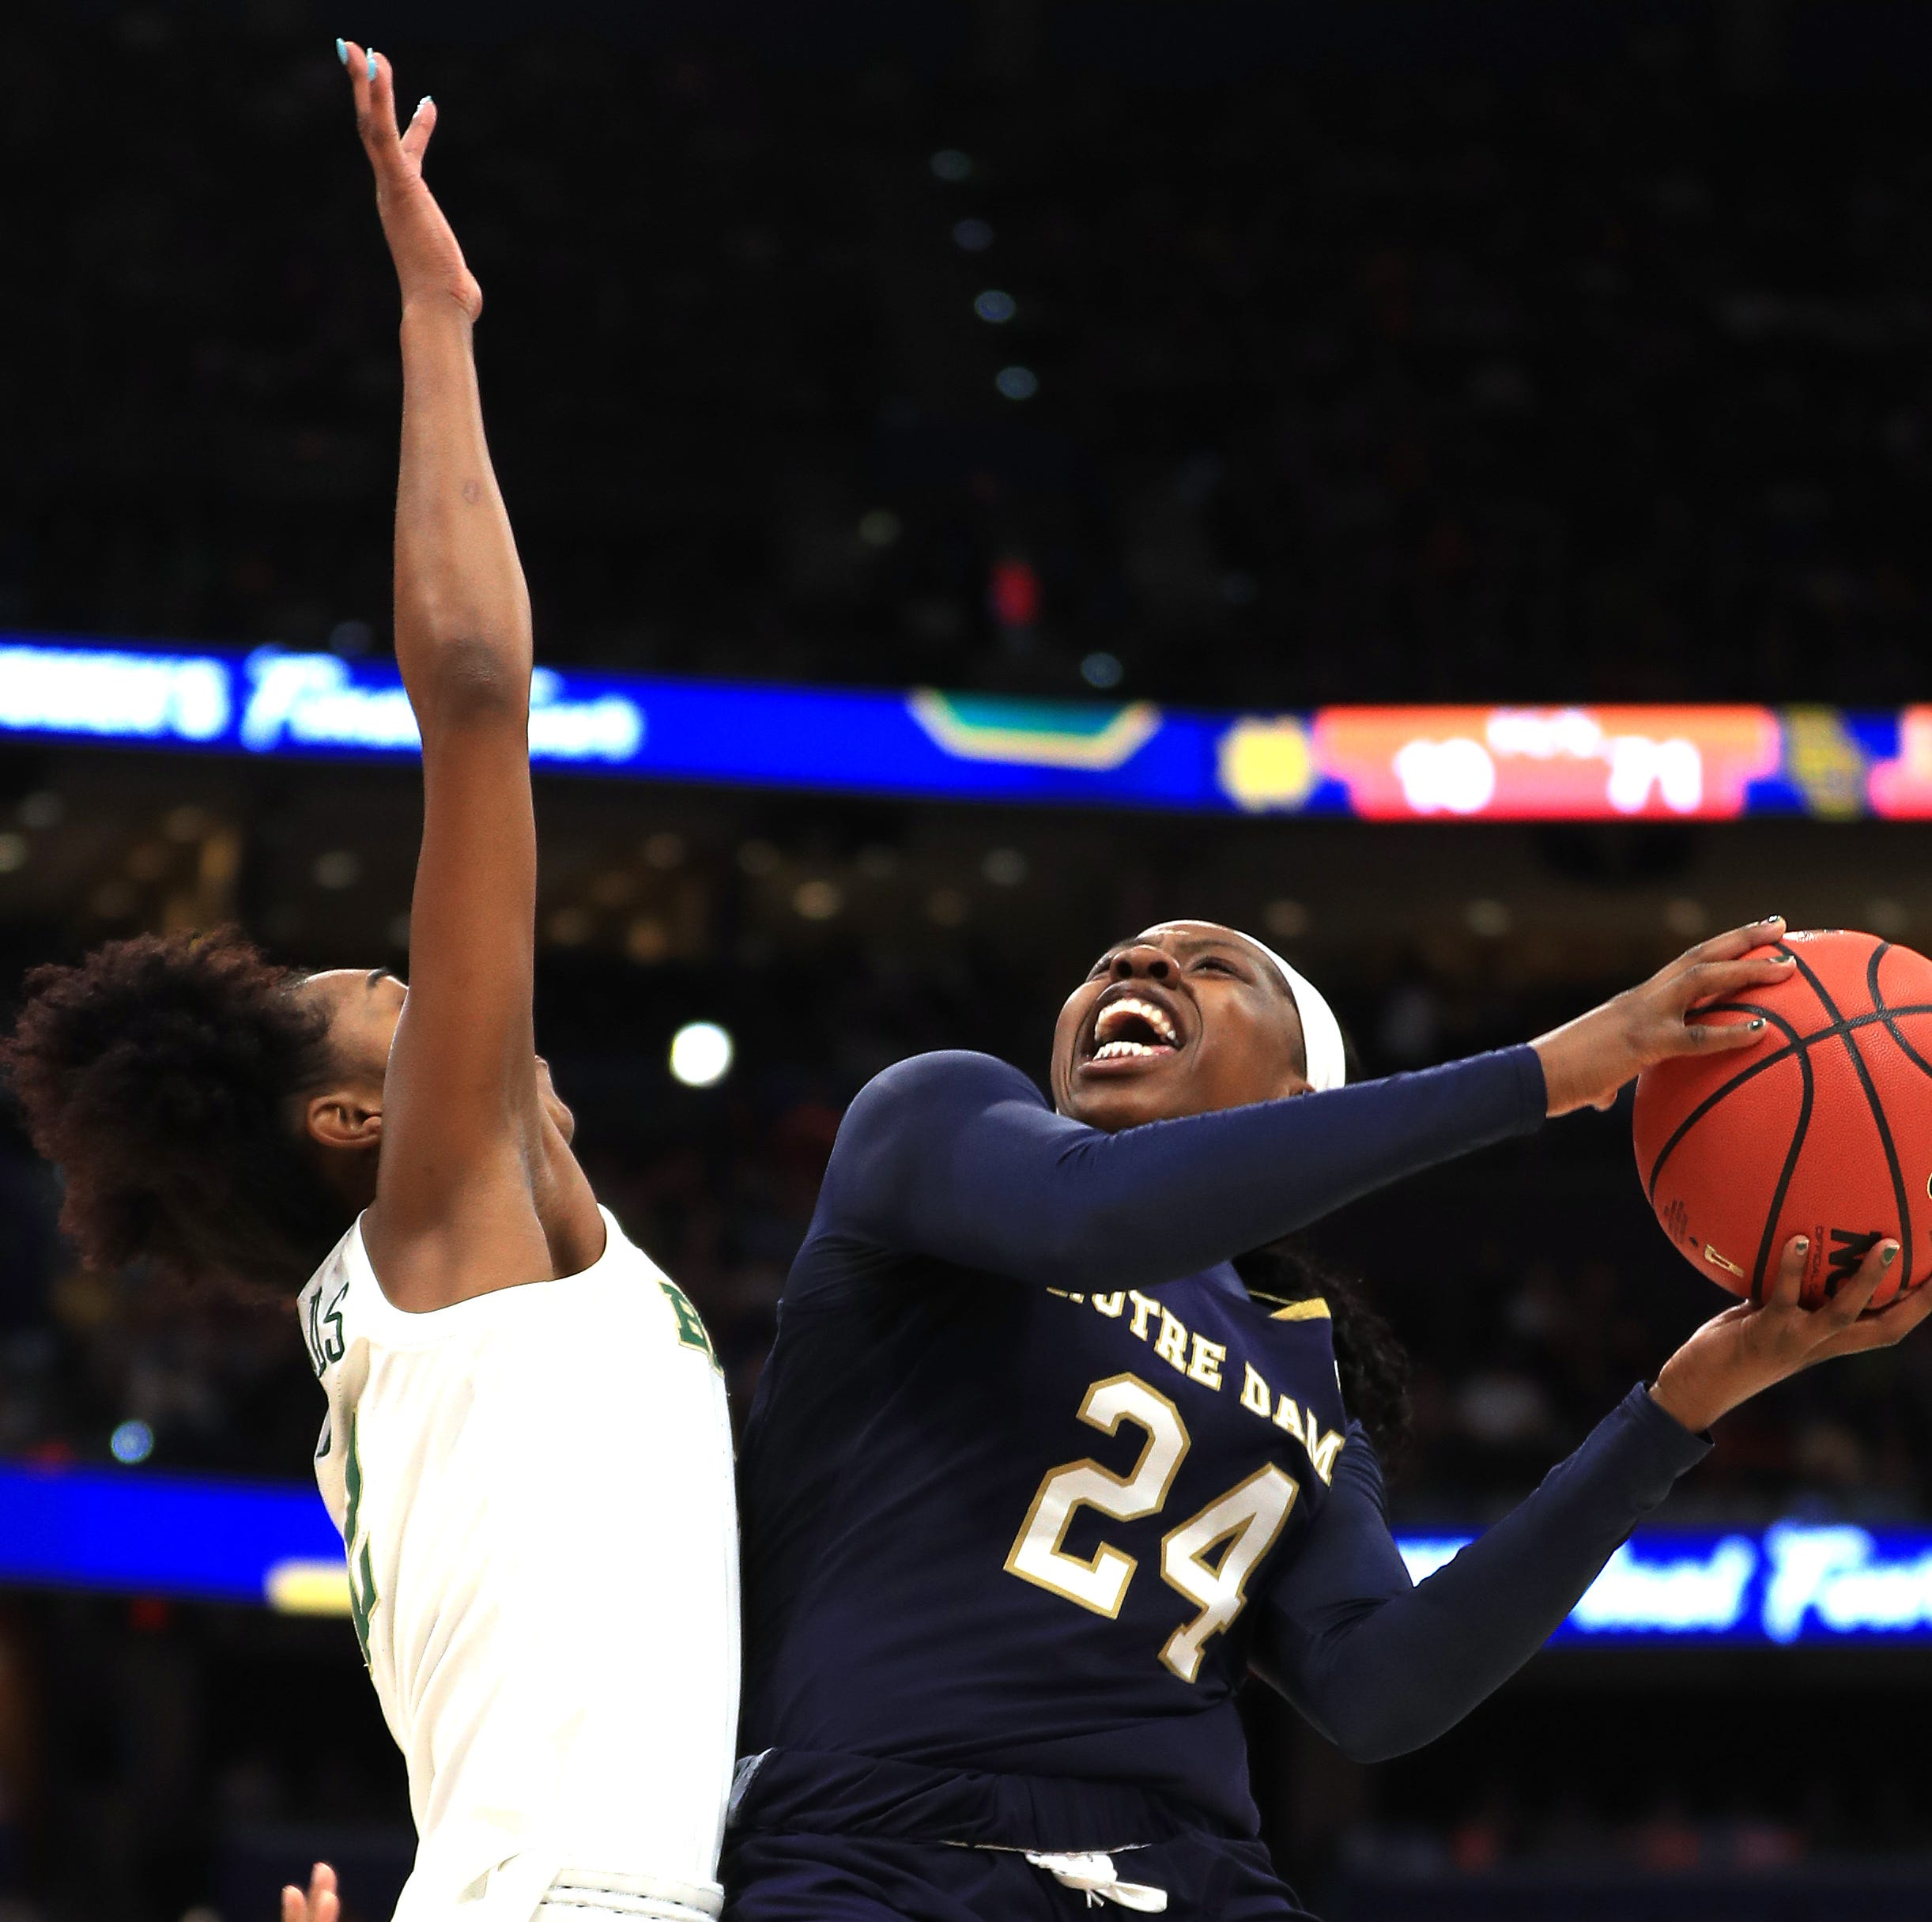 Arike Ogunbowale — Notre Dame's epic shot-maker — comes up 1 shot short in title game loss to Baylor